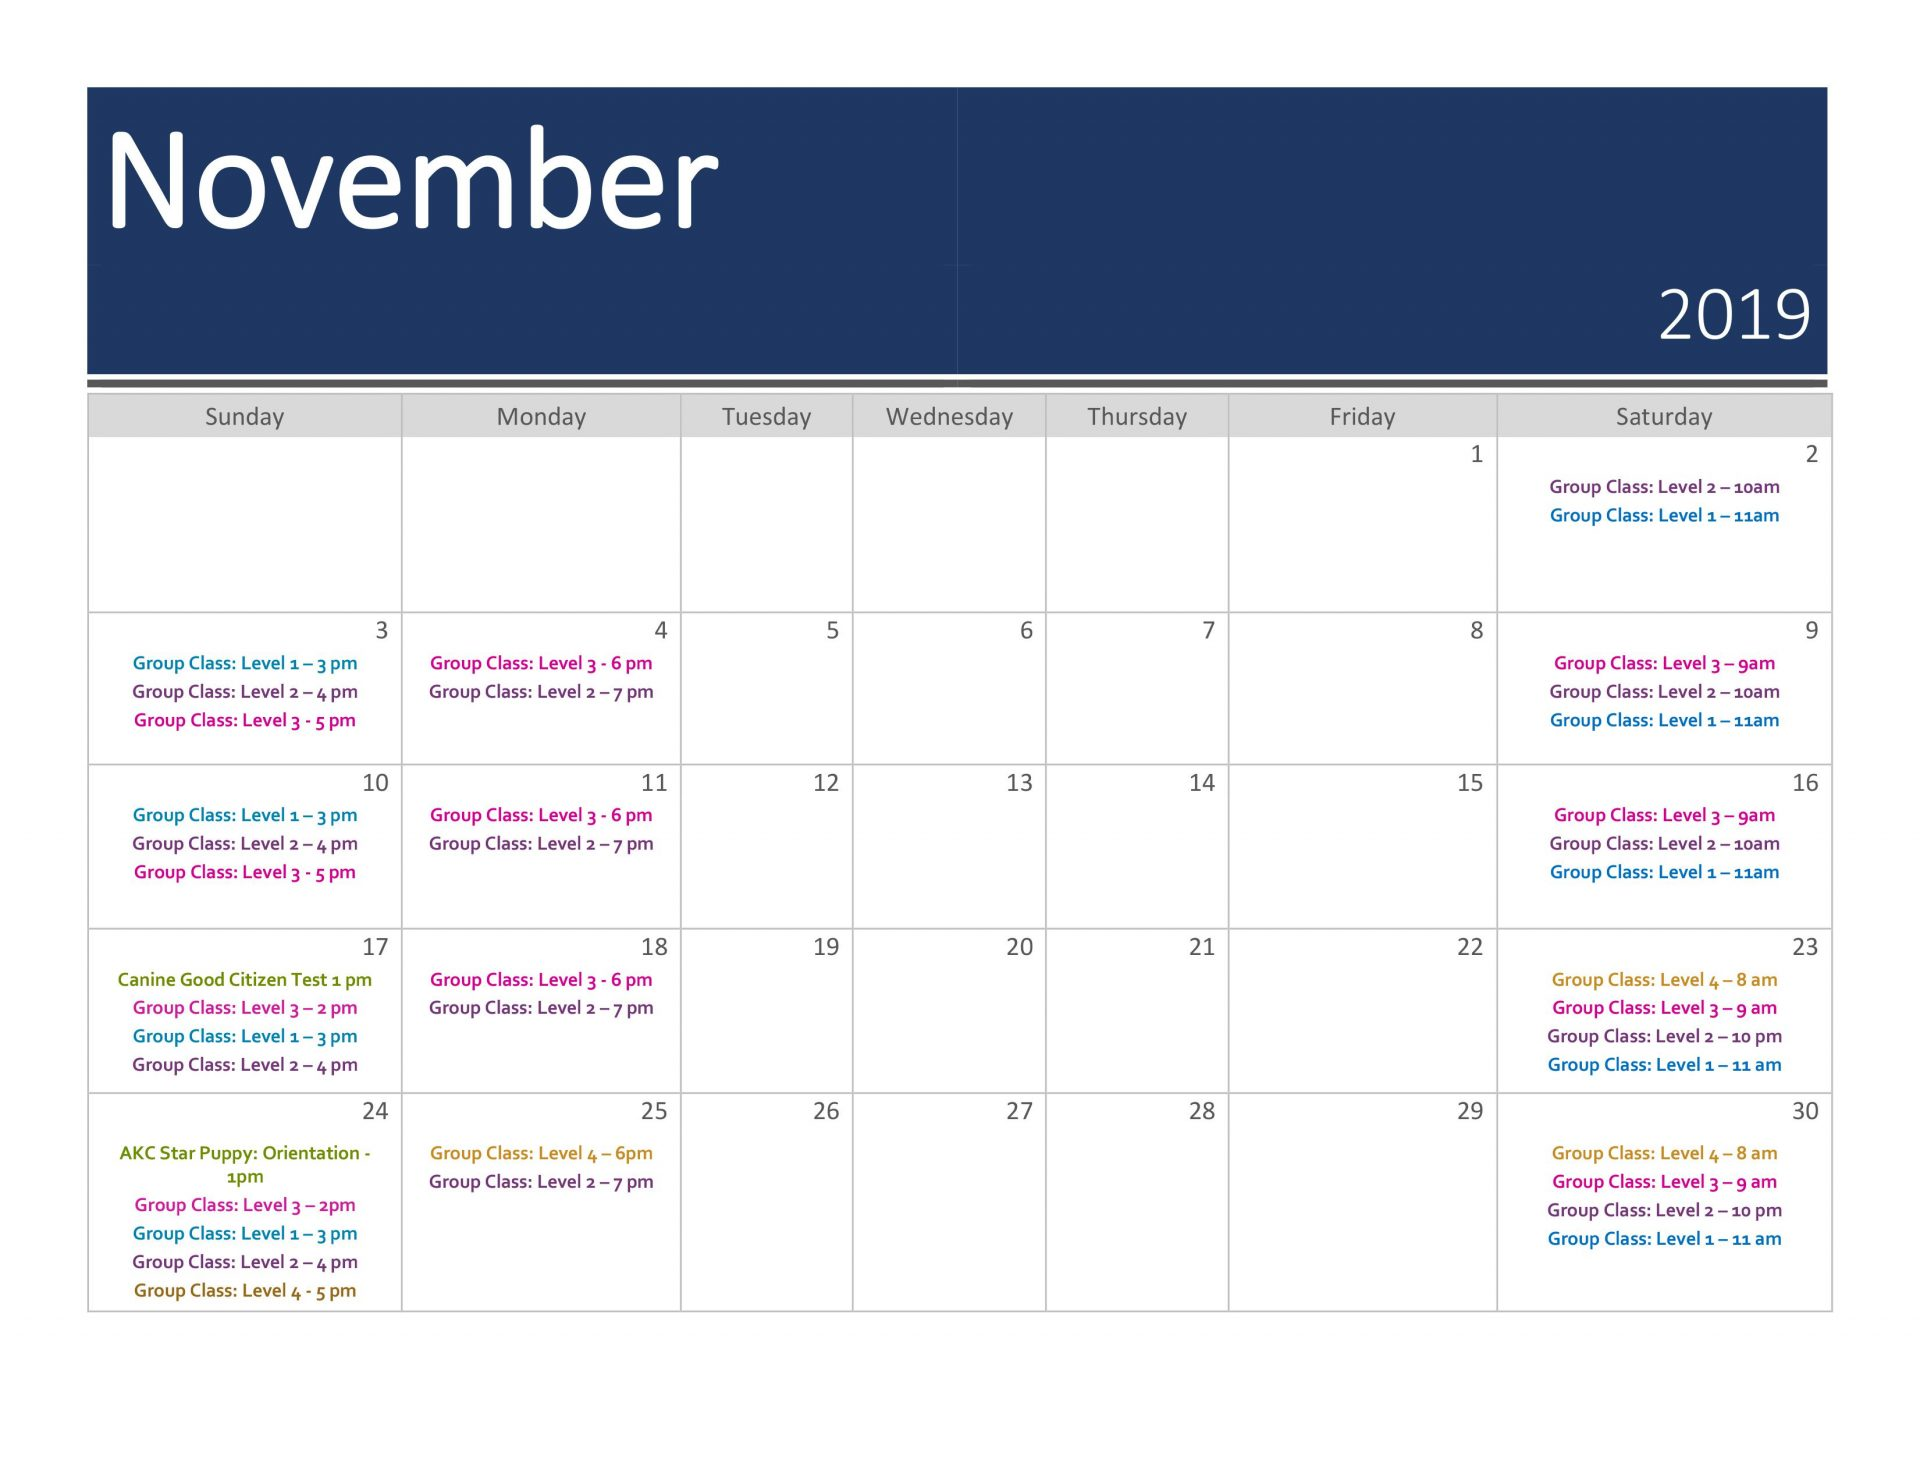 Group Training Calendar | November 2019